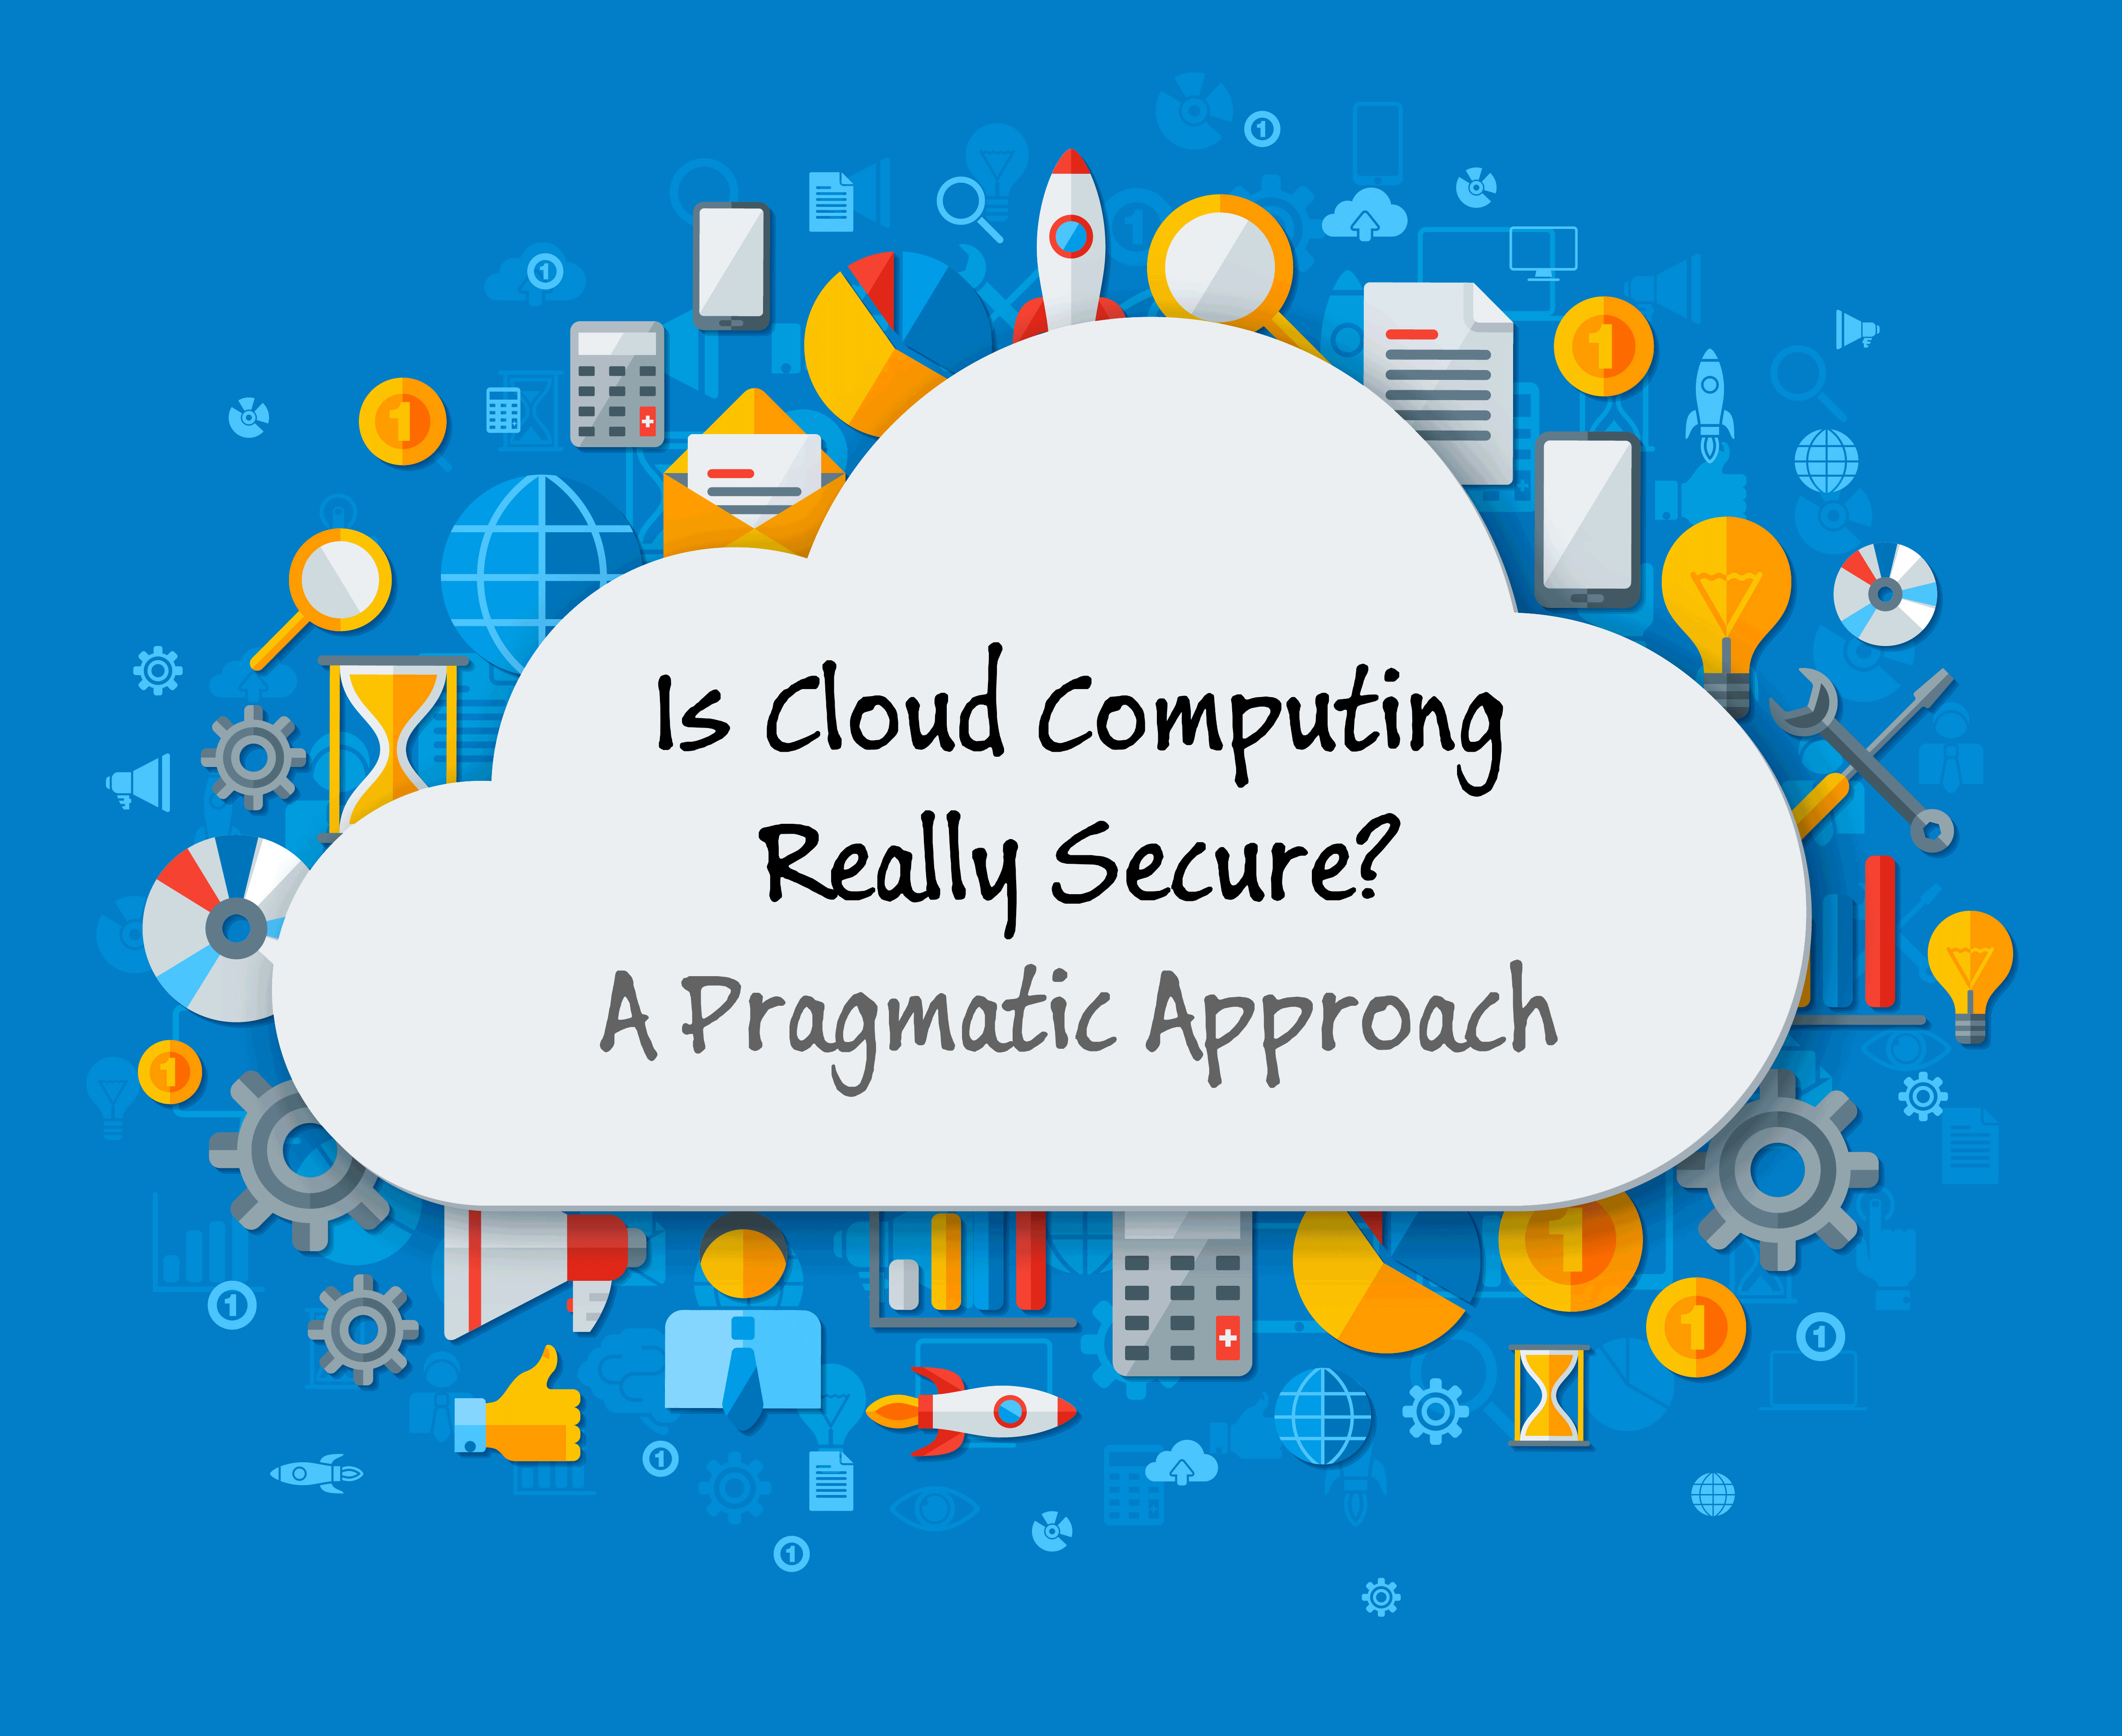 Is Cloud Computing Really Secure? A Pragmatic Approach